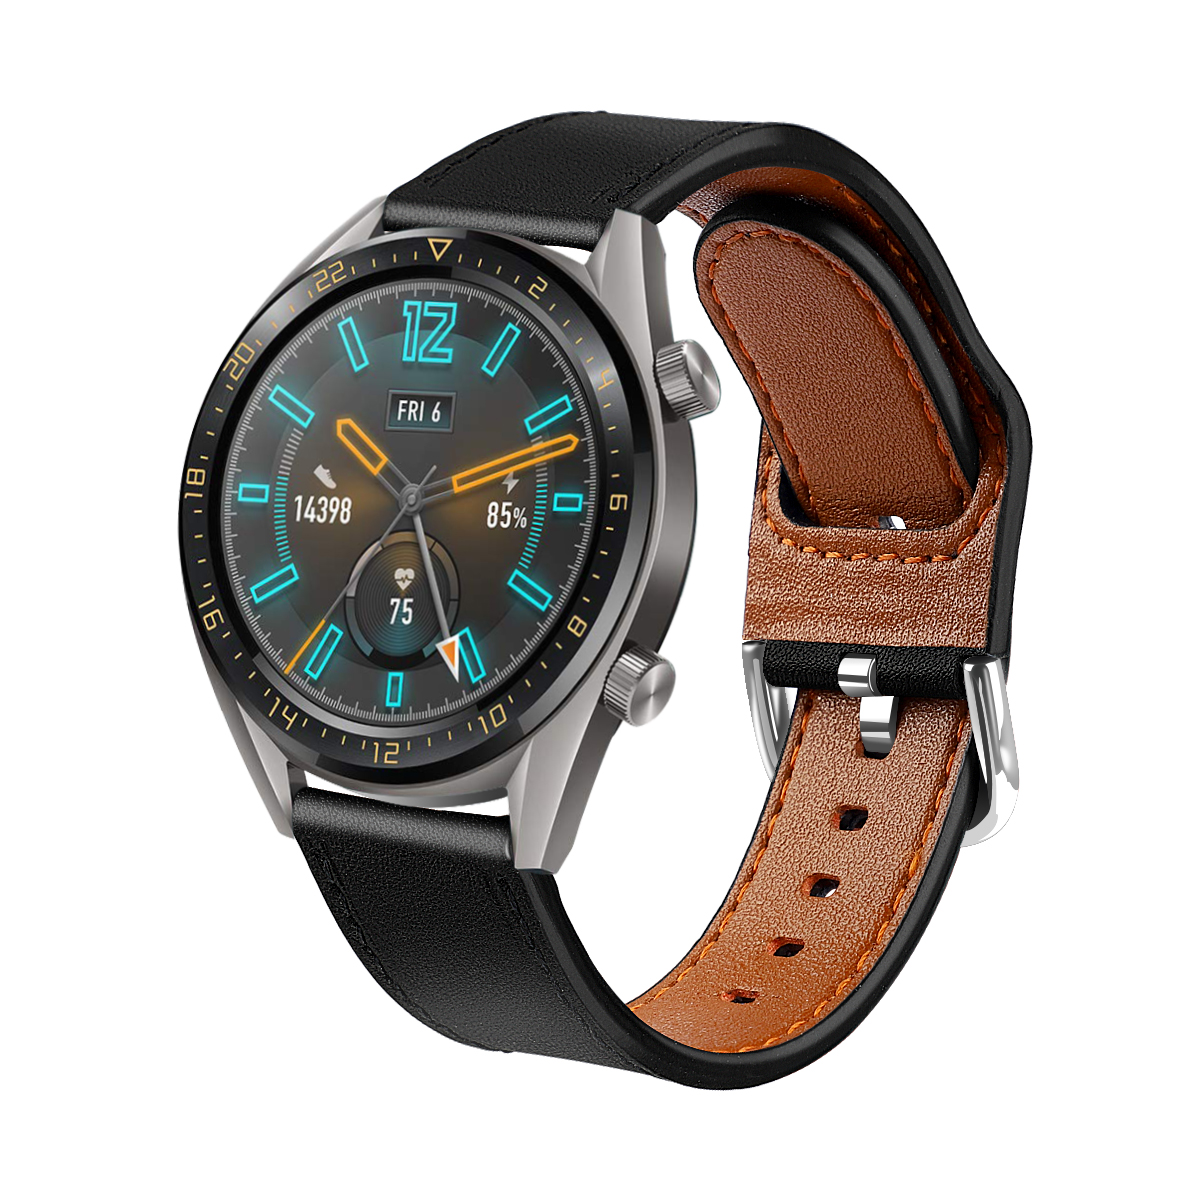 Genuine Leather Watch Bands Compatible With Huawei GT2 46mm Leather Watch Straps Replacement Watchbands For 22mm Watch 73001